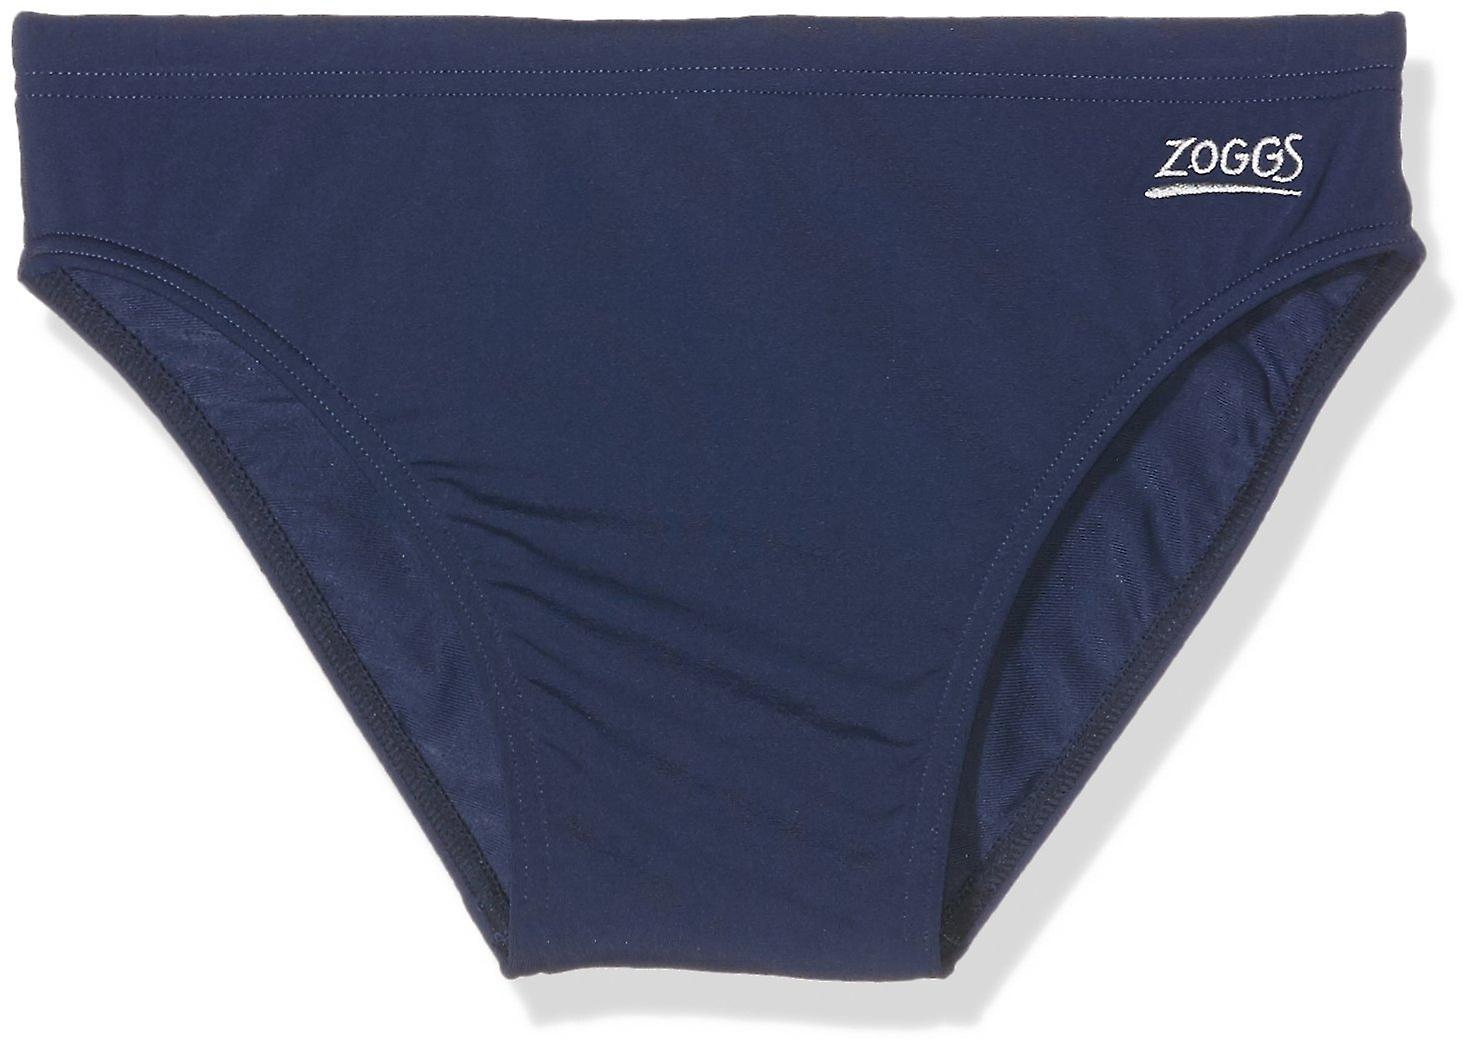 Zoggs Kid's Cottesloe Racer Swimming Trunks in Navy - Aqualast Fabric for 12-13 Years